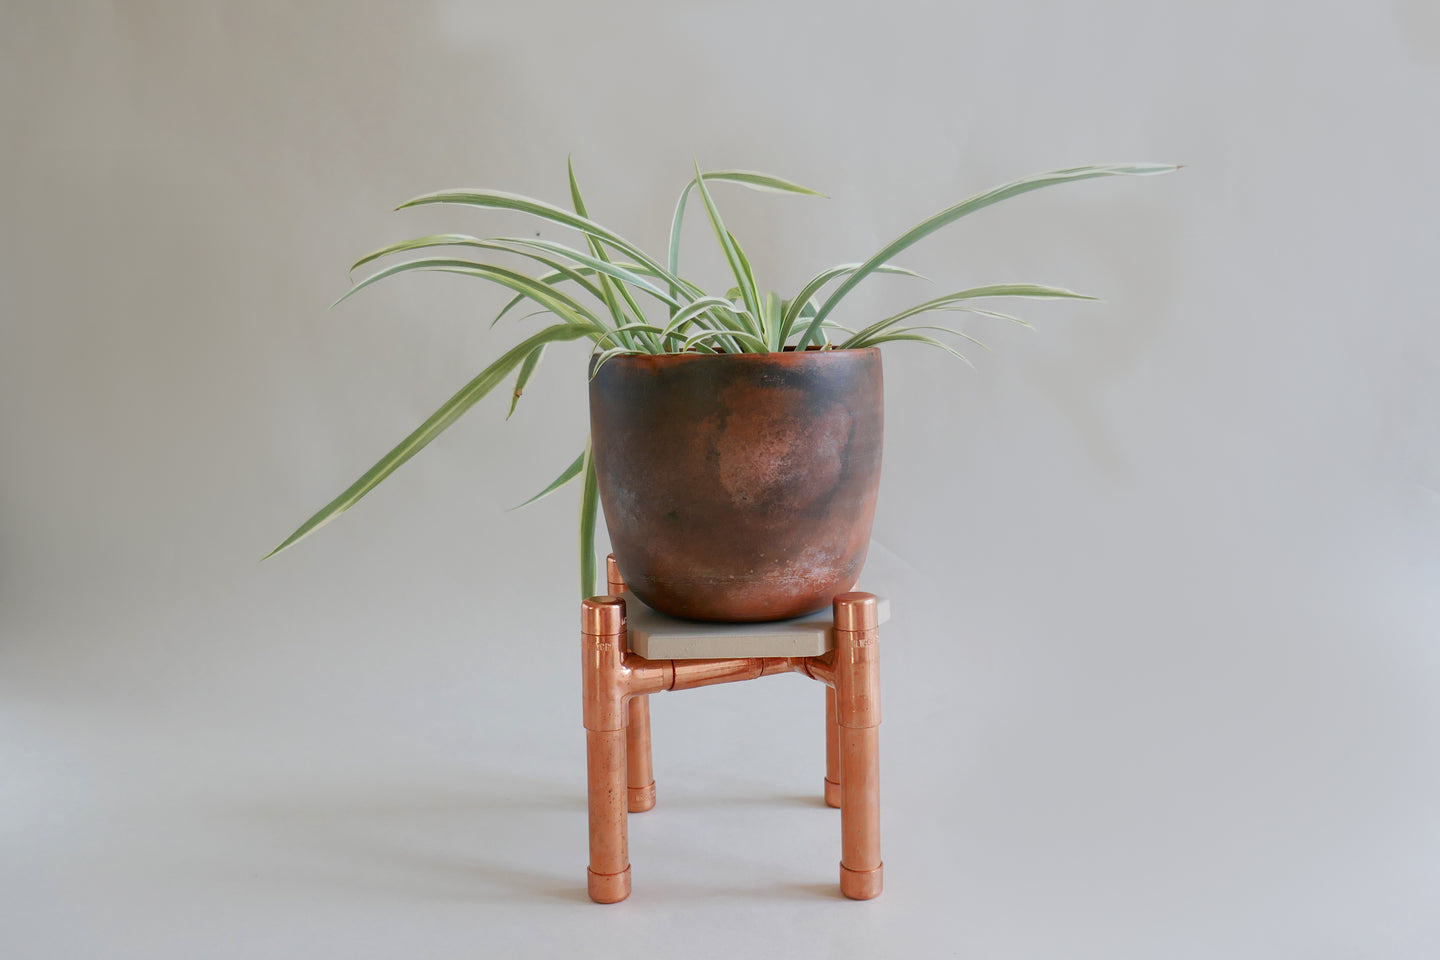 Make a desk copper plant stand: Course + Kit